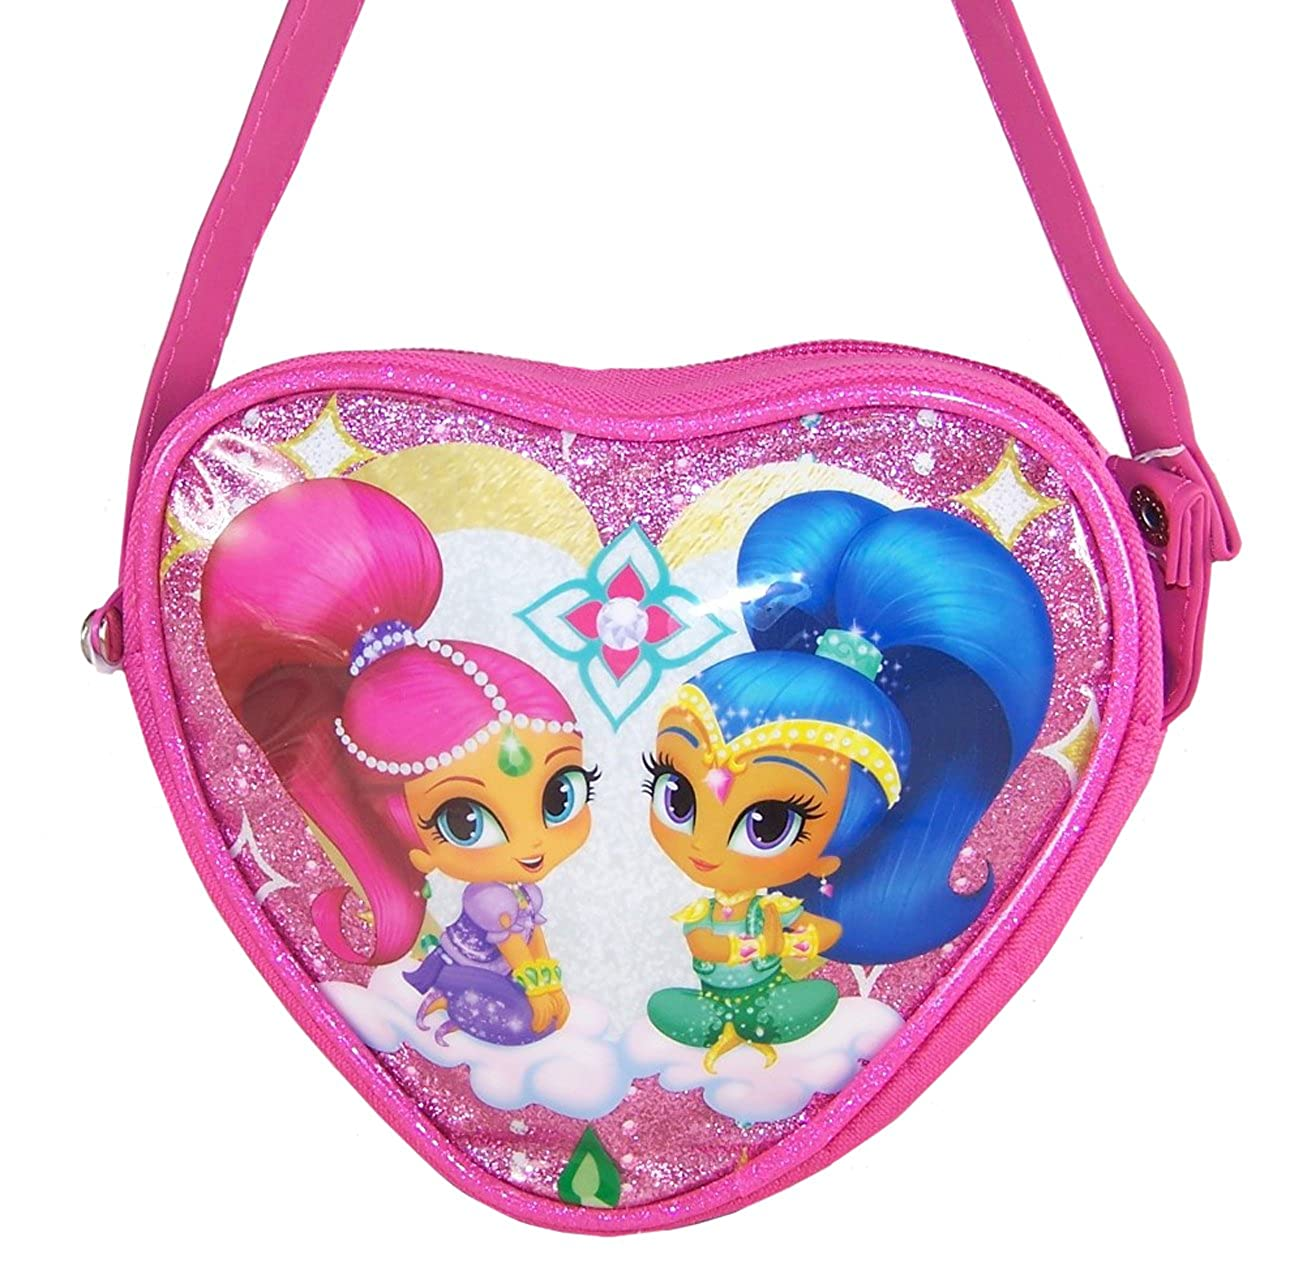 Girls childrens Shimmer and Shine character heart shaped sparkly pink over body bag dressing up holidays party shimmerheartbag